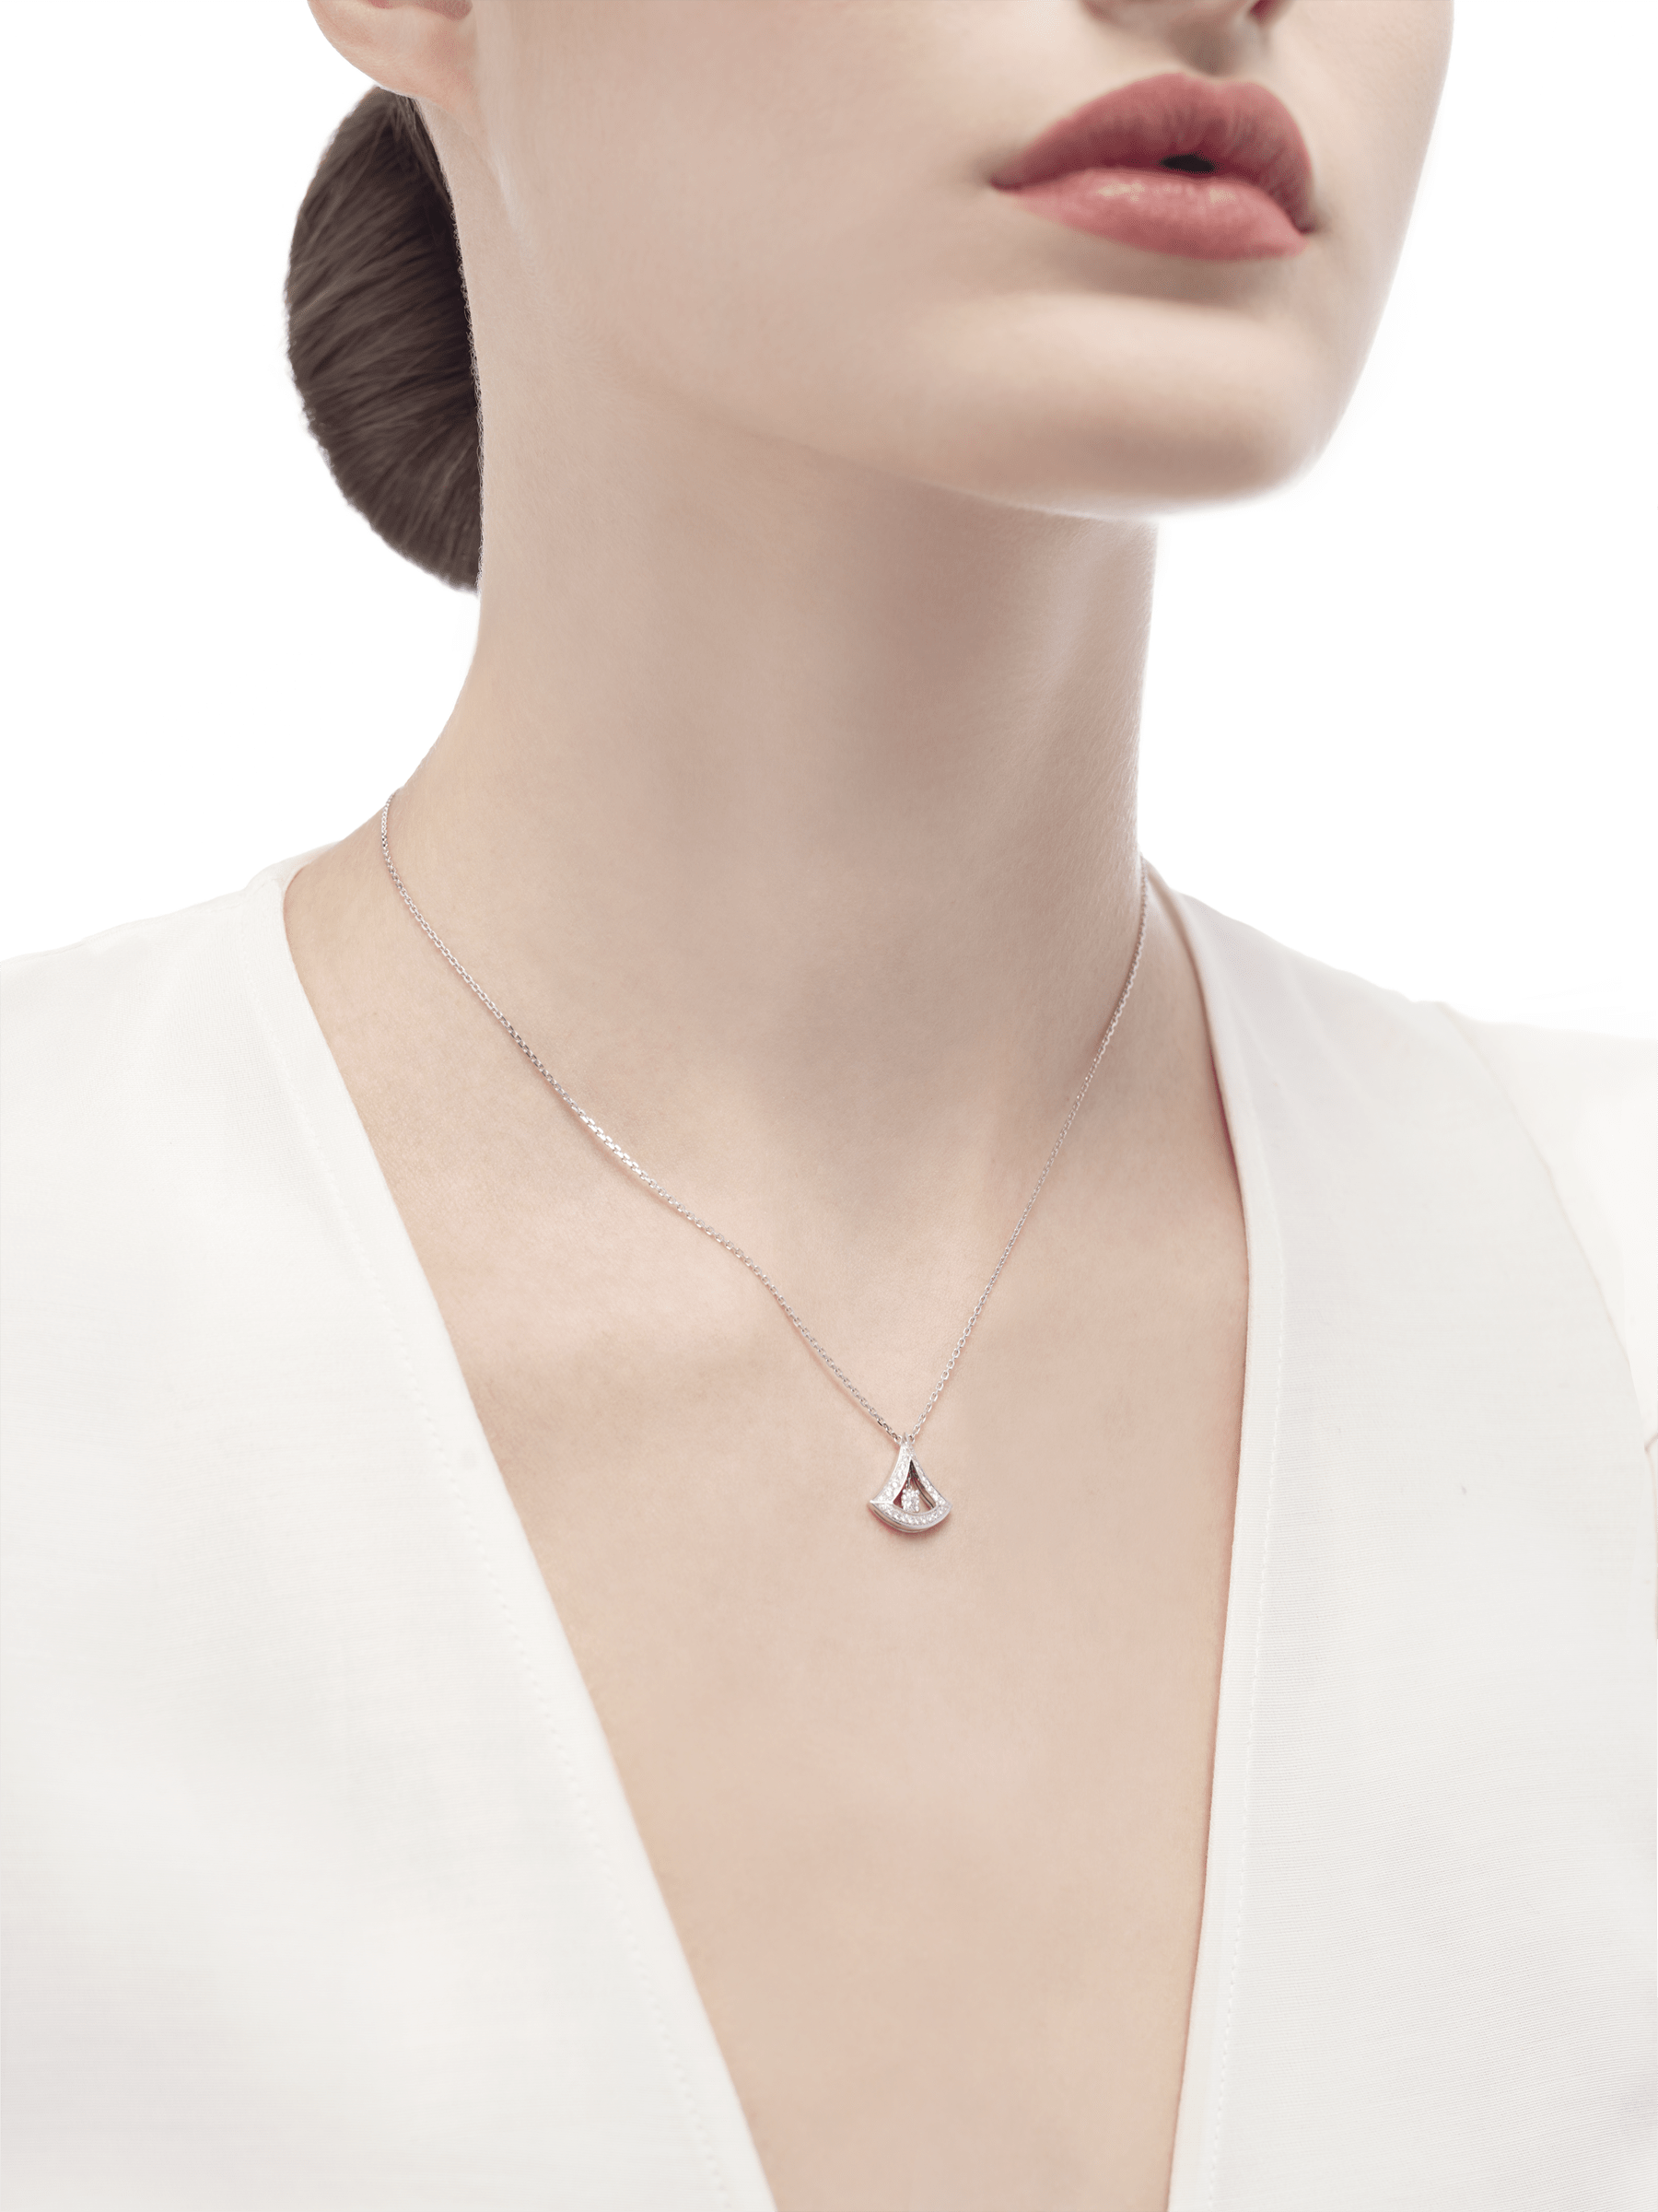 DIVAS' DREAM openwork necklace in 18 kt white gold with 18 kt white gold pendant set with a central diamond and pavé diamonds. 354049 image 3